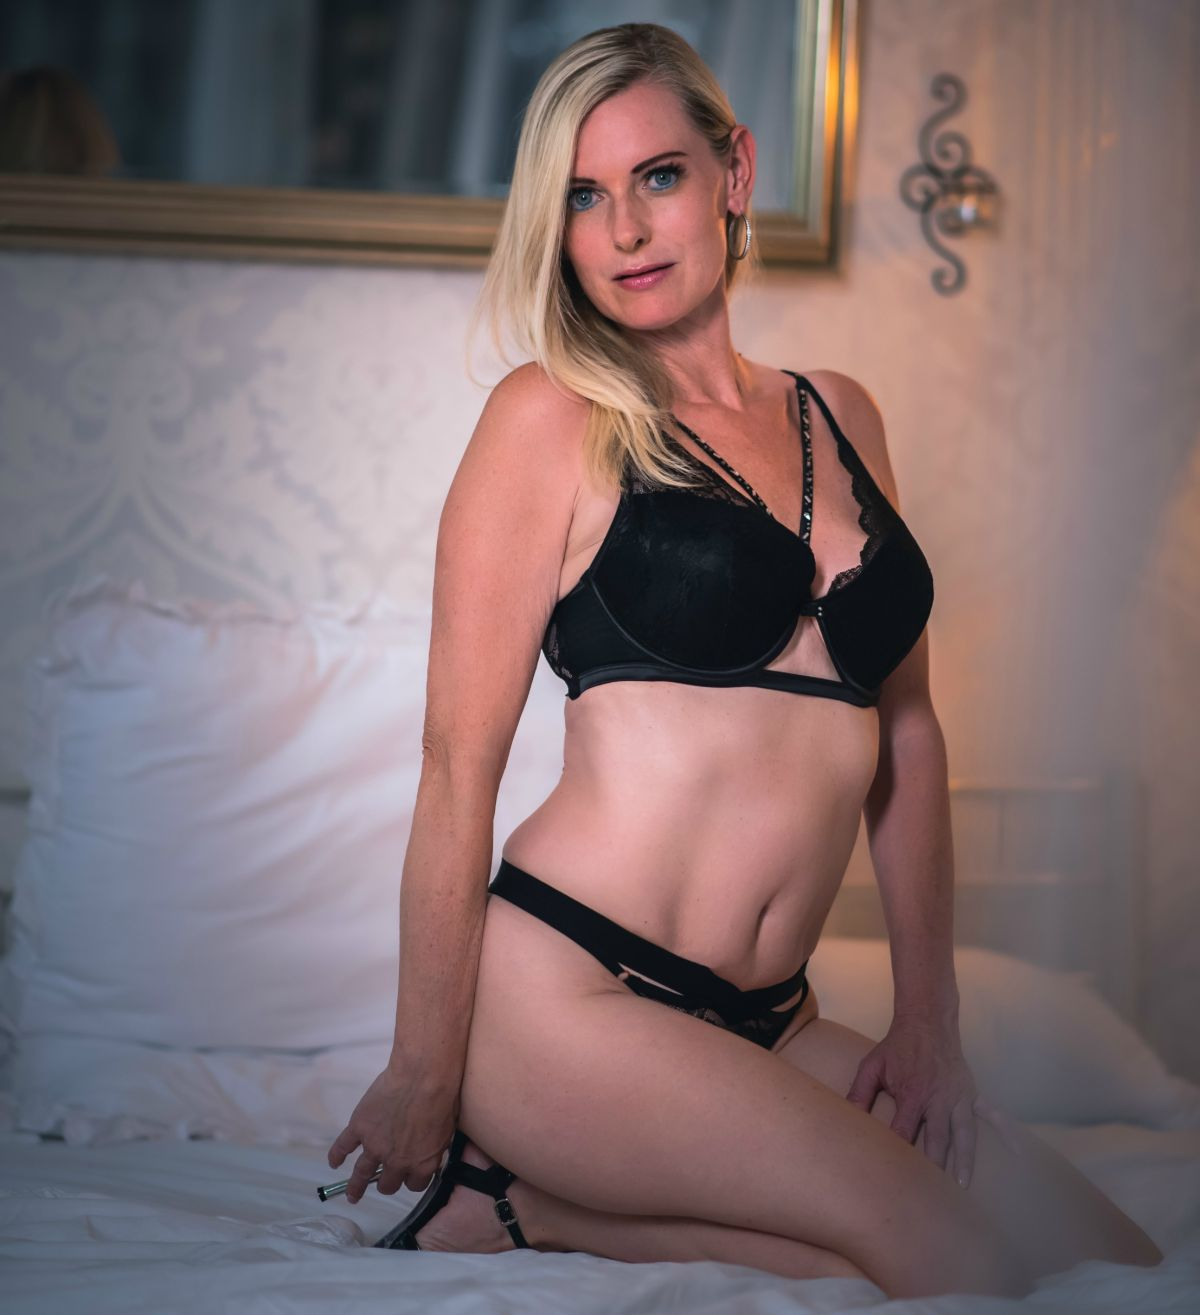 Onlyfans DirtyTina onlyfans leaked